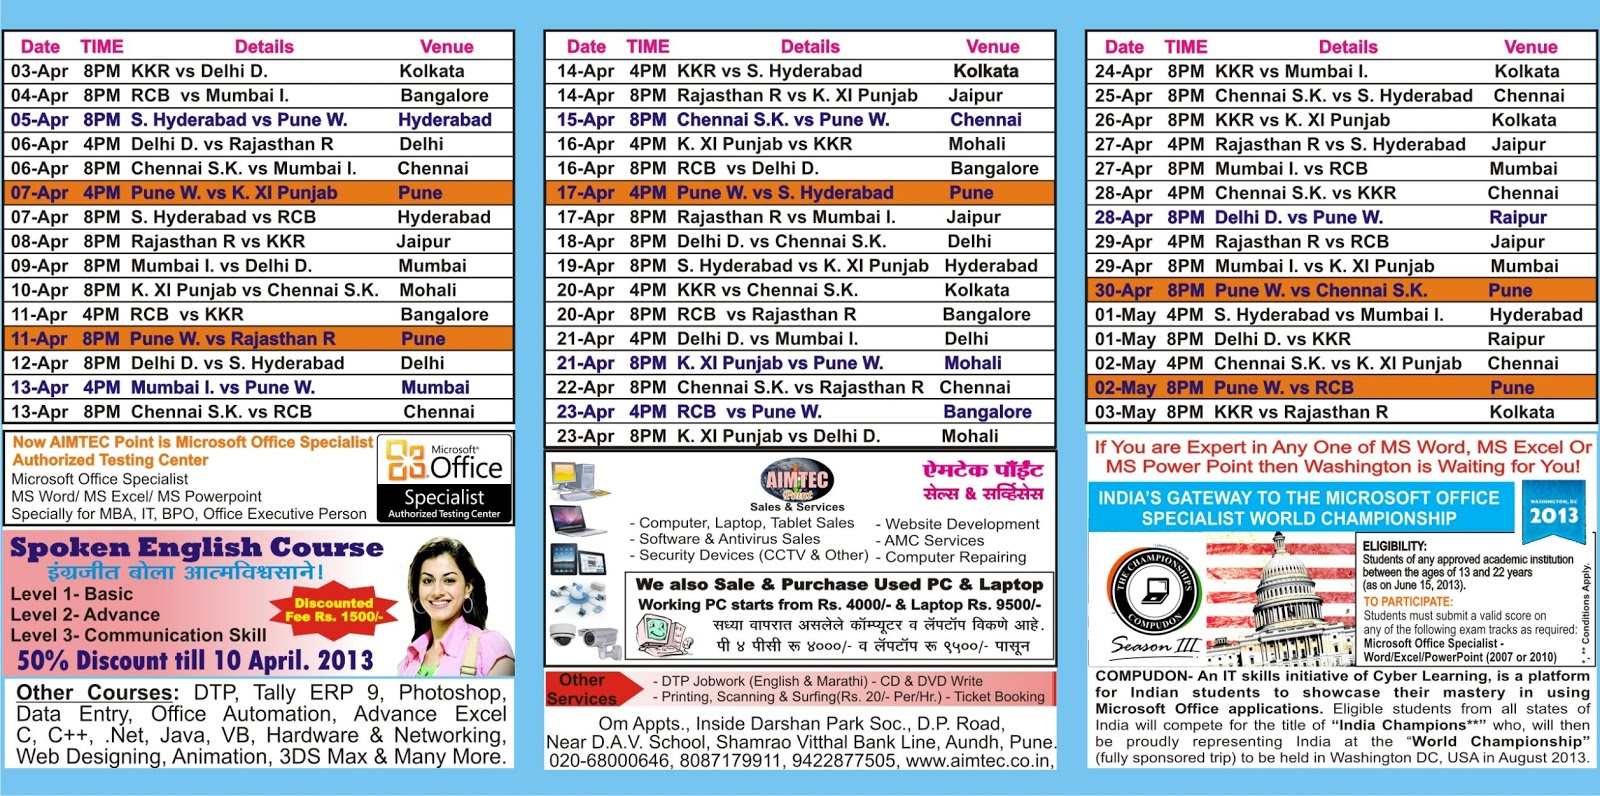 IPL 2013 Schedule (Time Table) | IPL T20 2013 Season Time Table ...